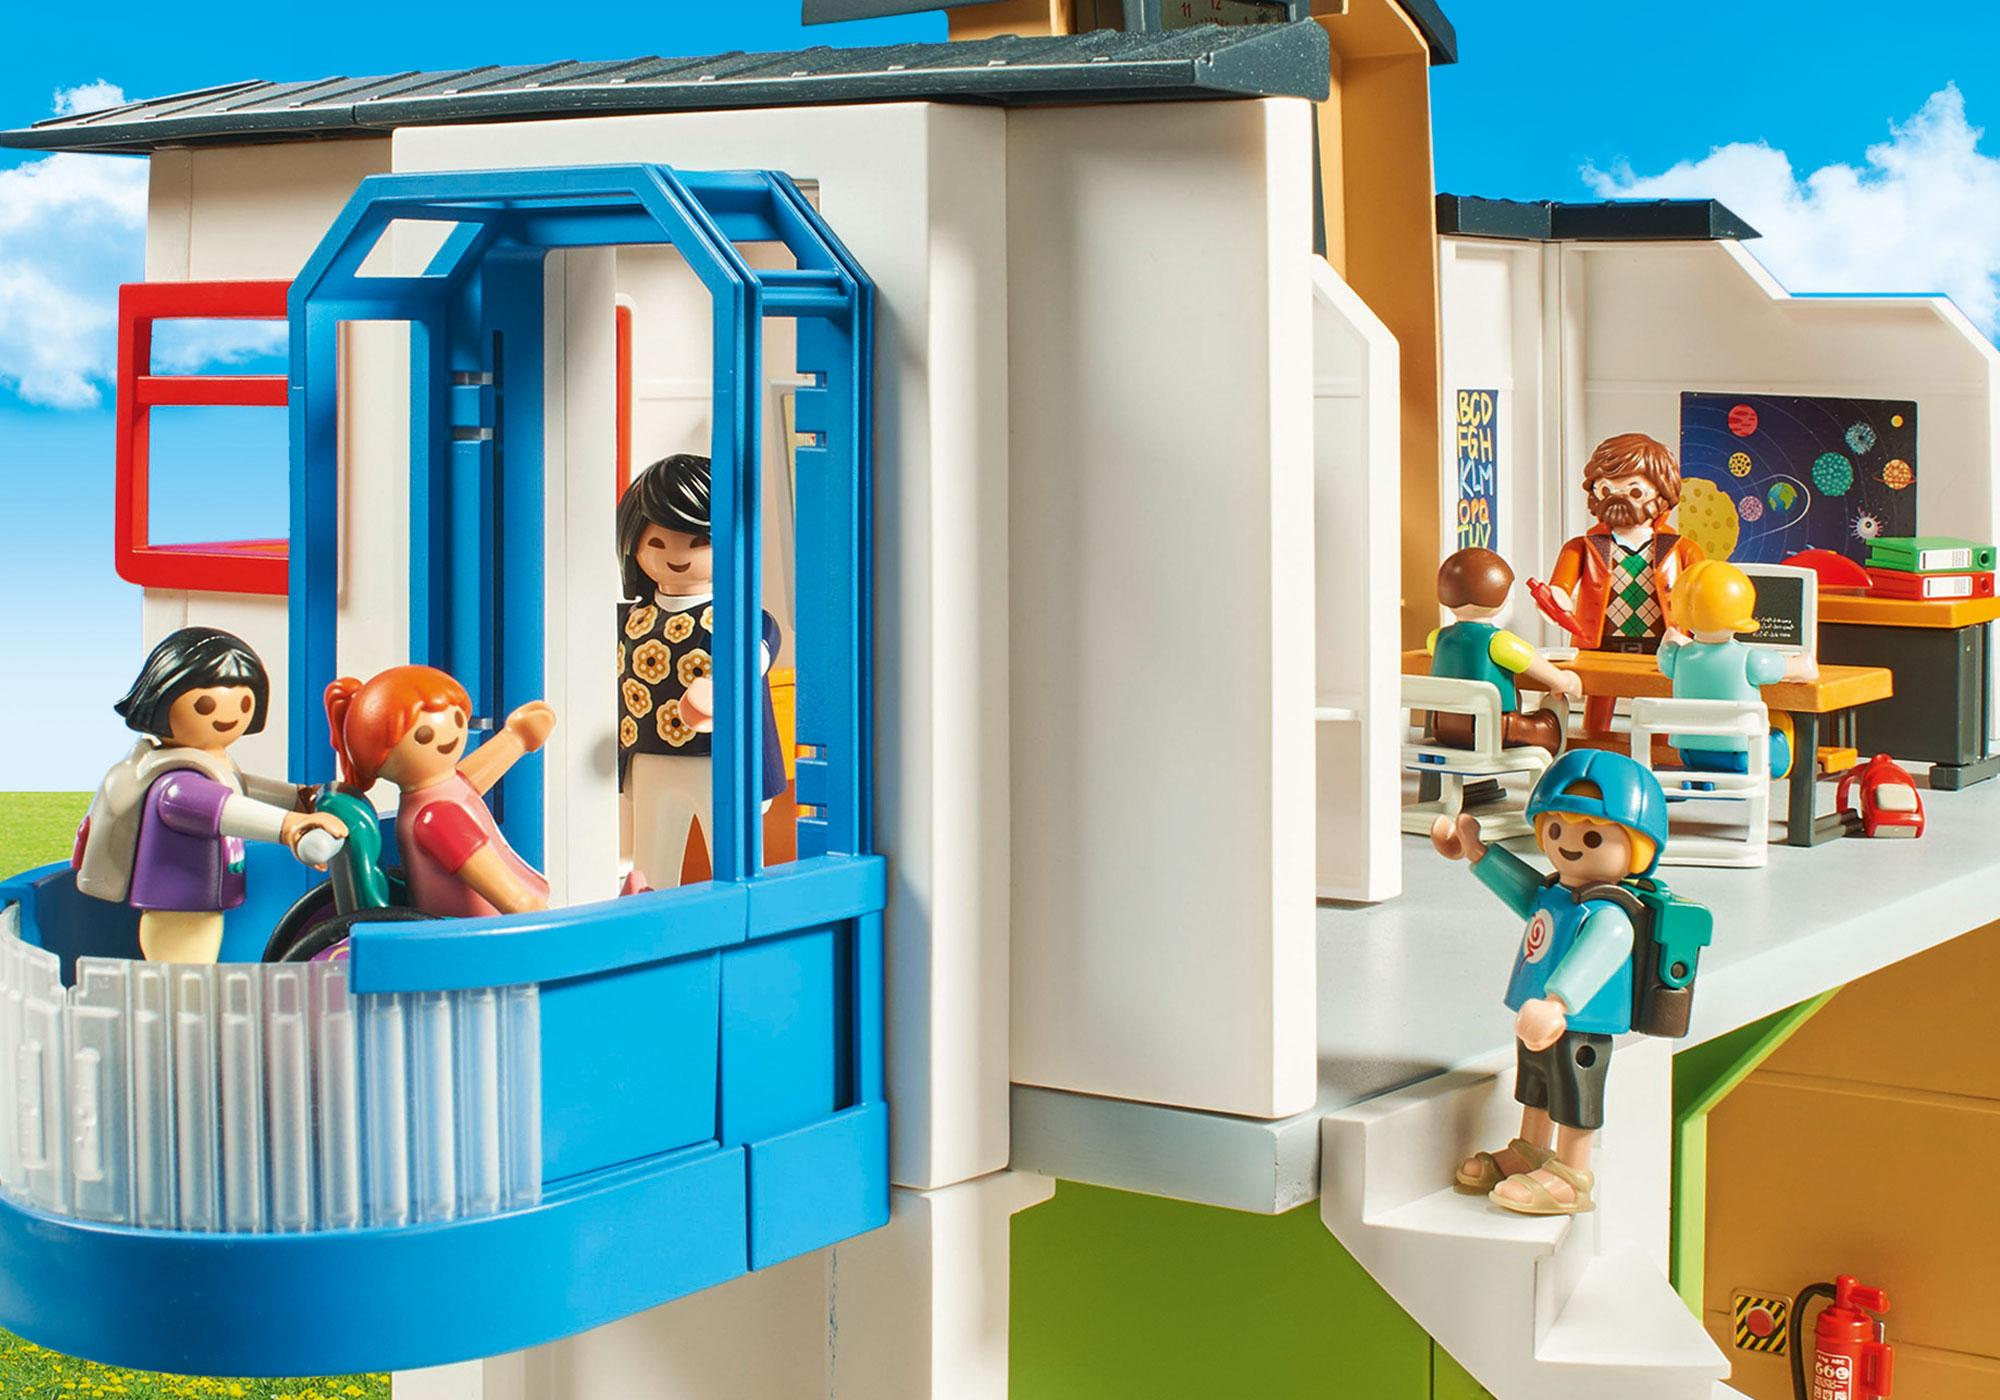 http://media.playmobil.com/i/playmobil/9453_product_extra5/Große Schule mit Einrichtung